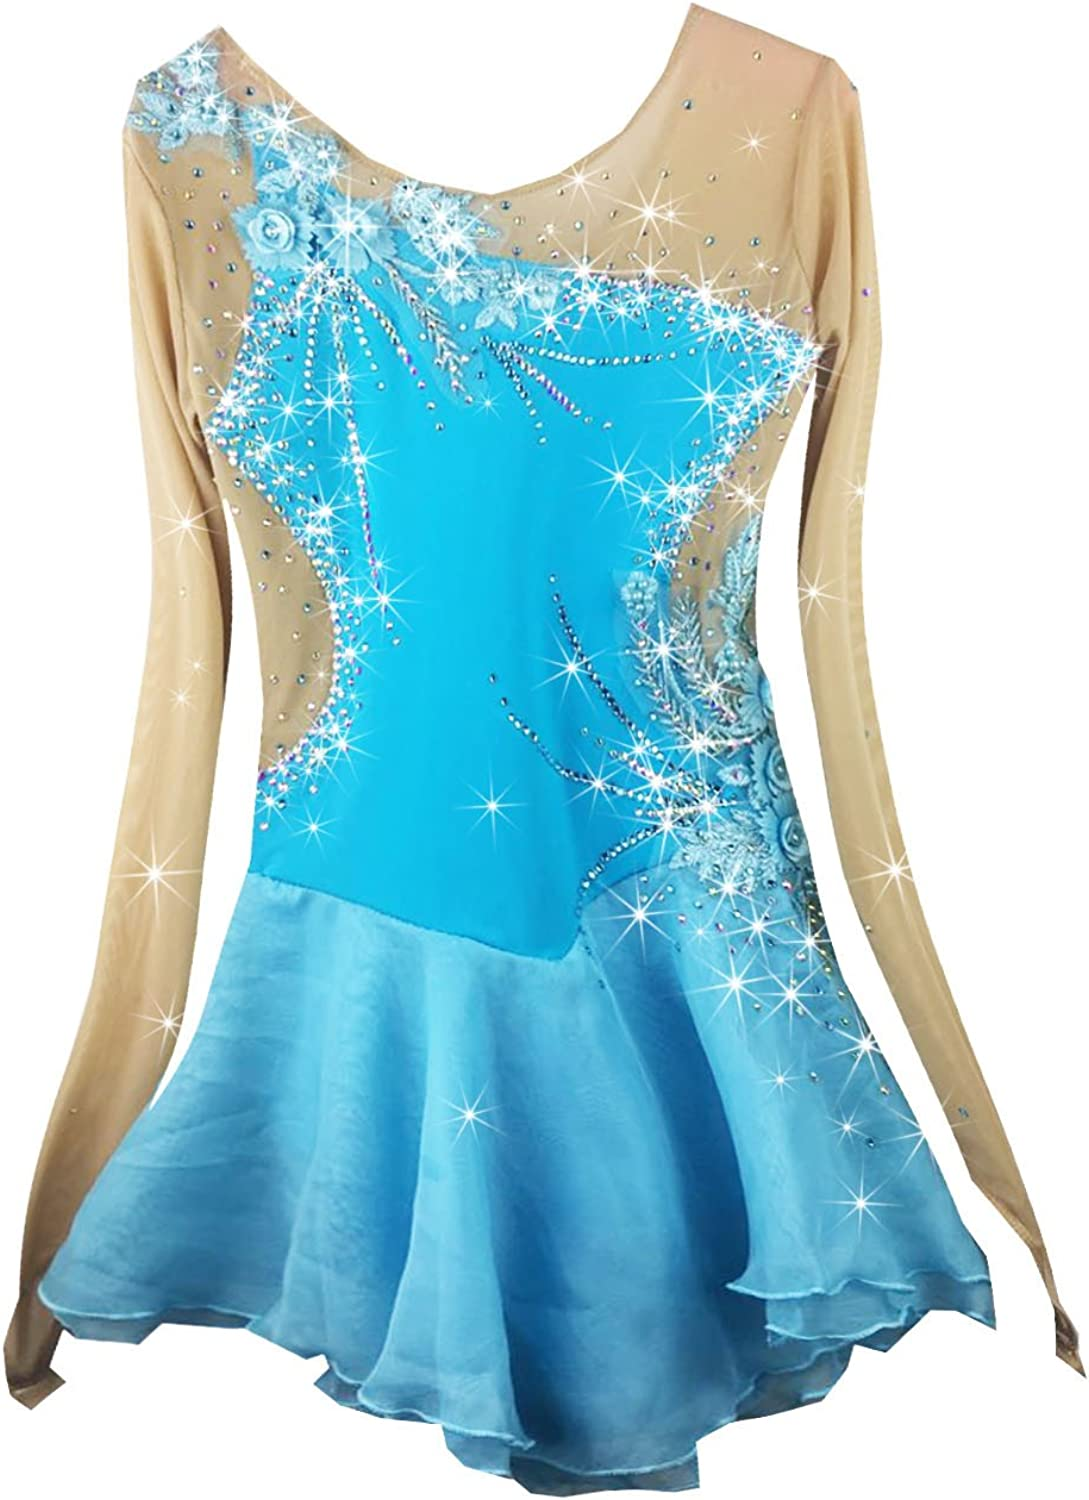 Heart&M Hand Painted Ice Skating Dress For Grils, Handmade Figure Skating Competition Costume Long Sleeved Skating Dress Light bluee